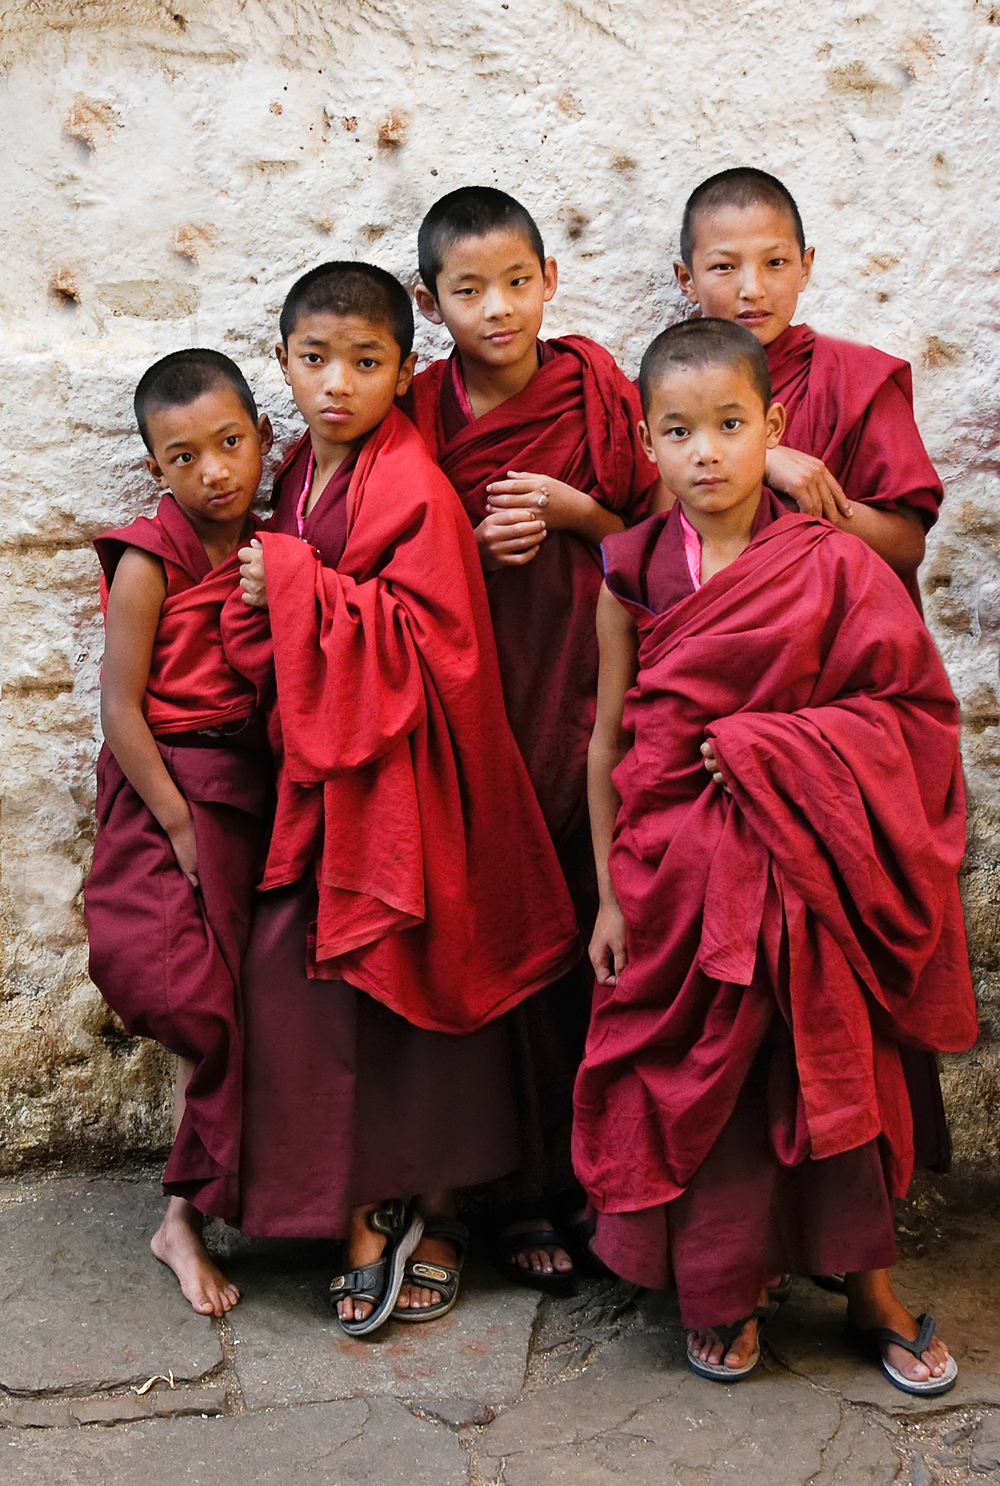 Apprentice monks, Buddhist monastery, central Bhutan